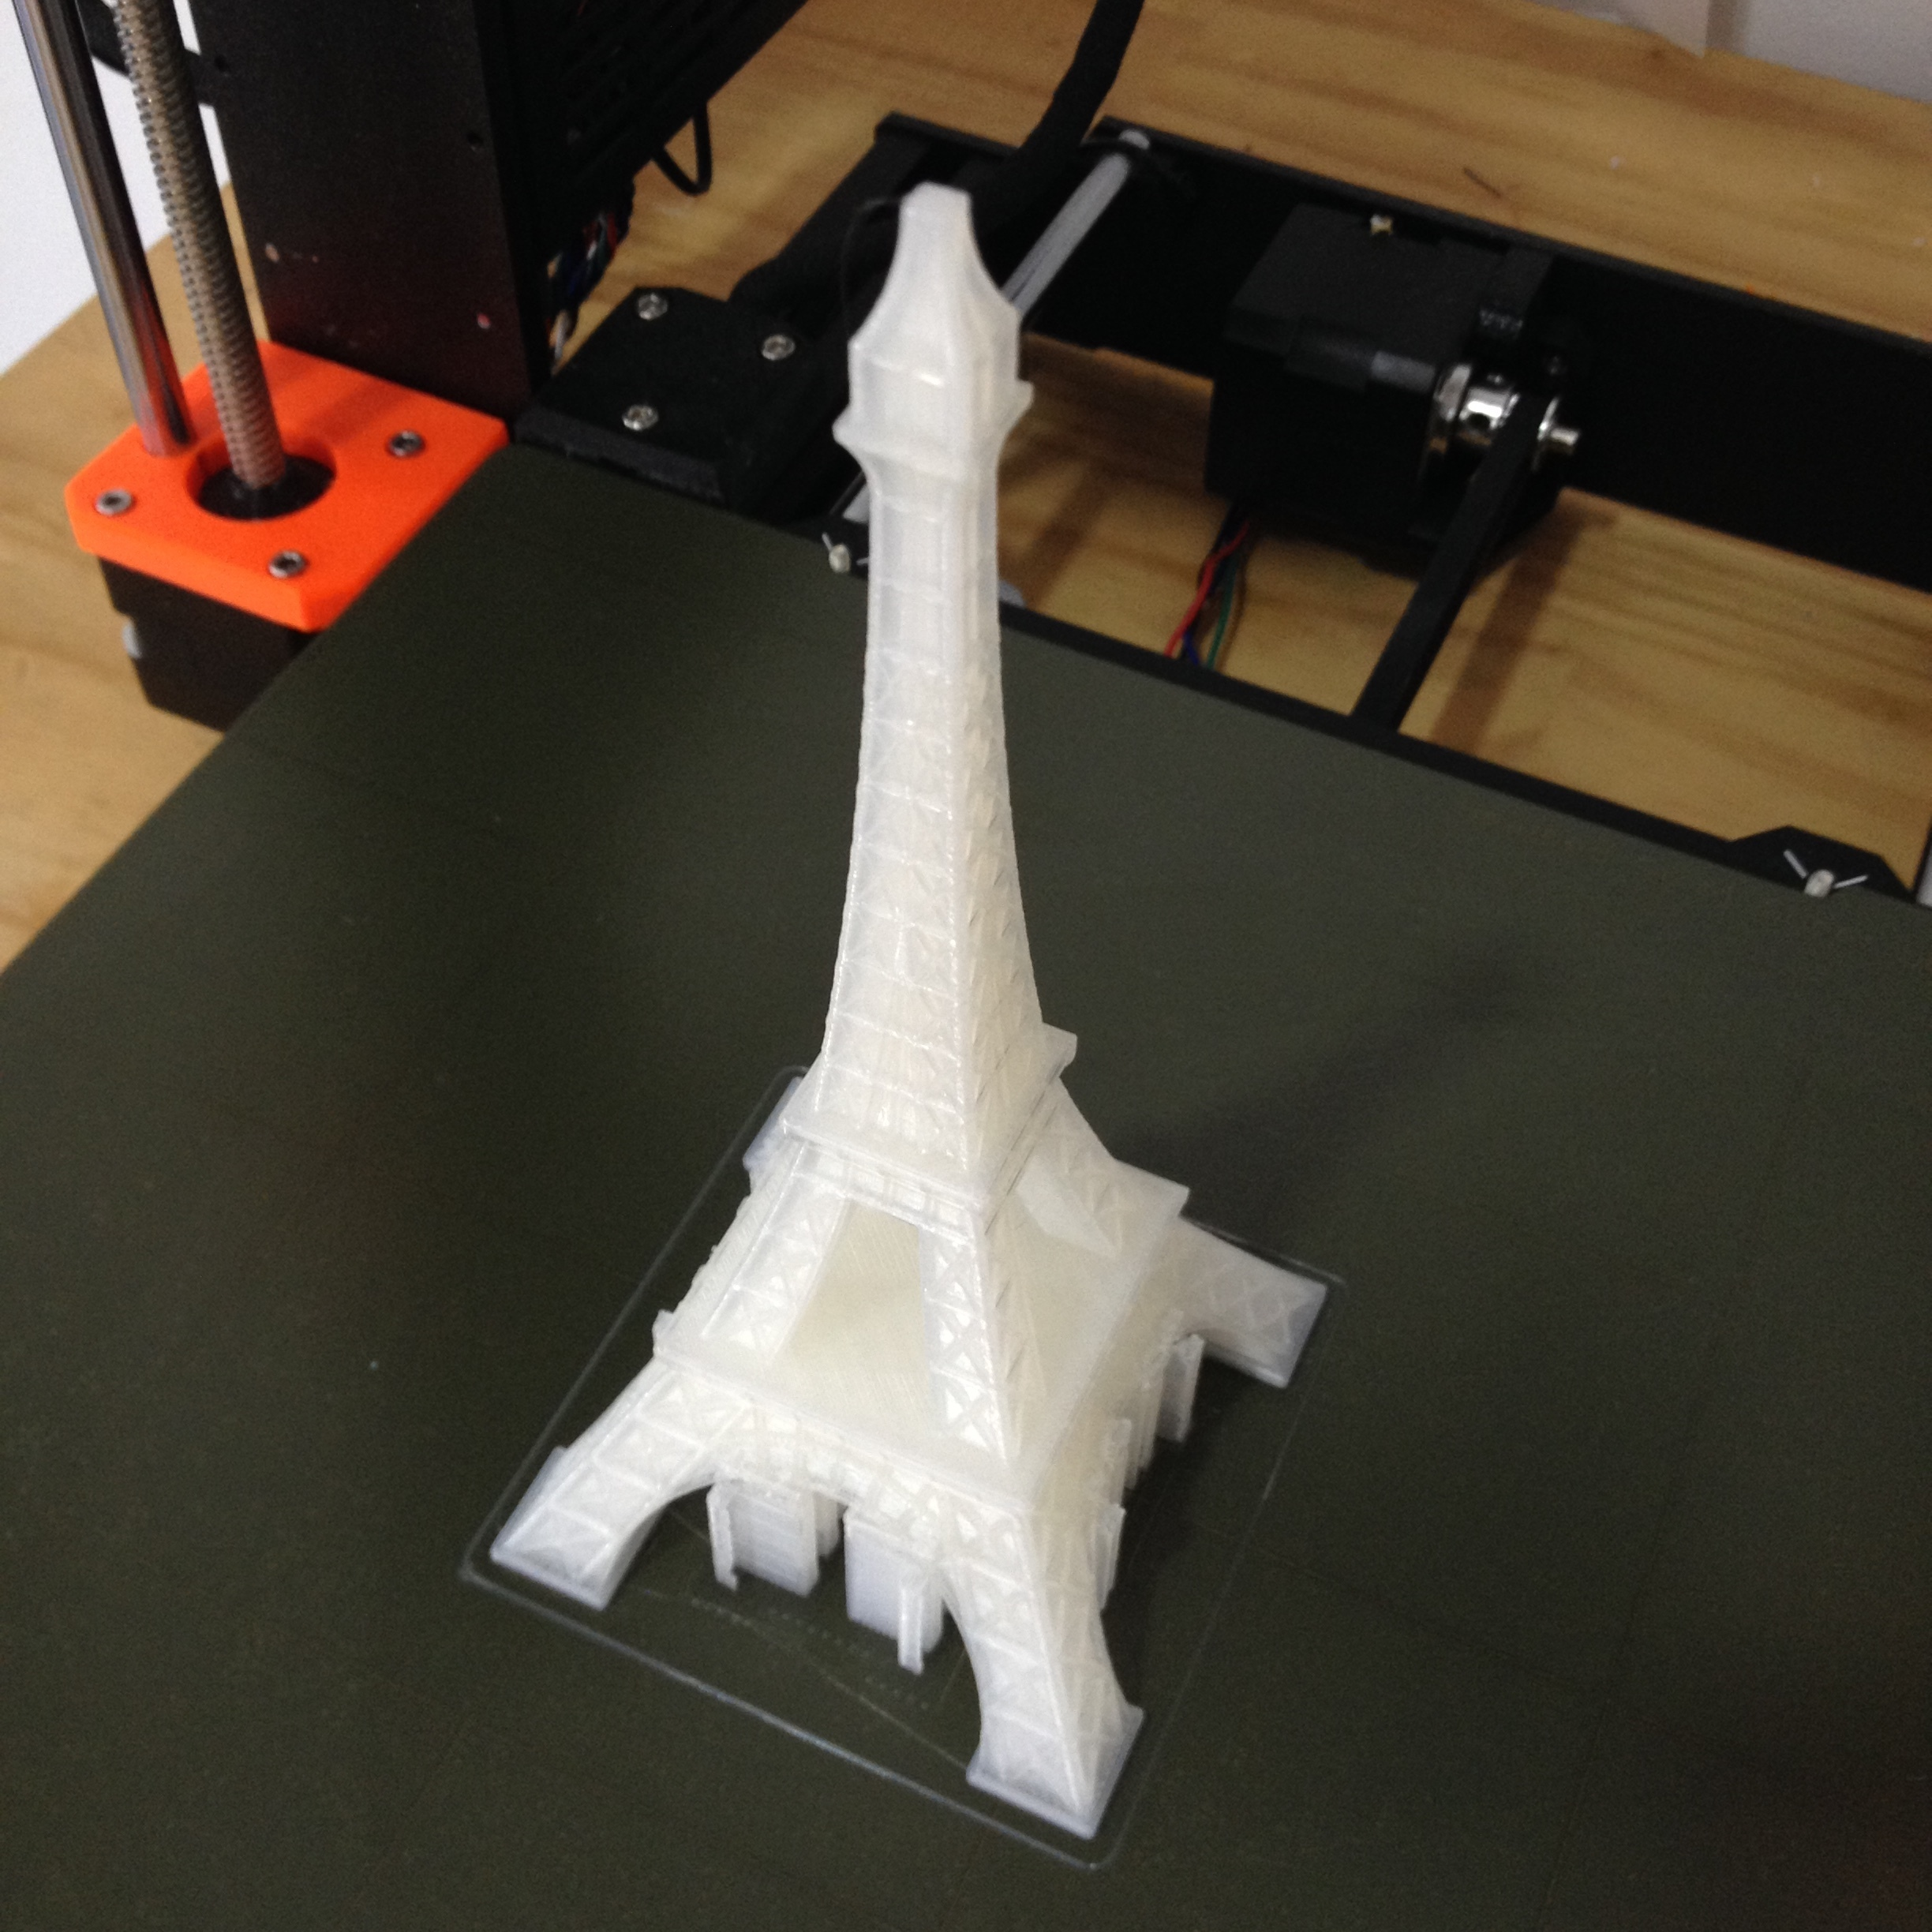 IMG_2034.JPG Download free STL file Eiffel Tower | 150mm | FFF (FDM) • 3D print template, ATIXFormas3D